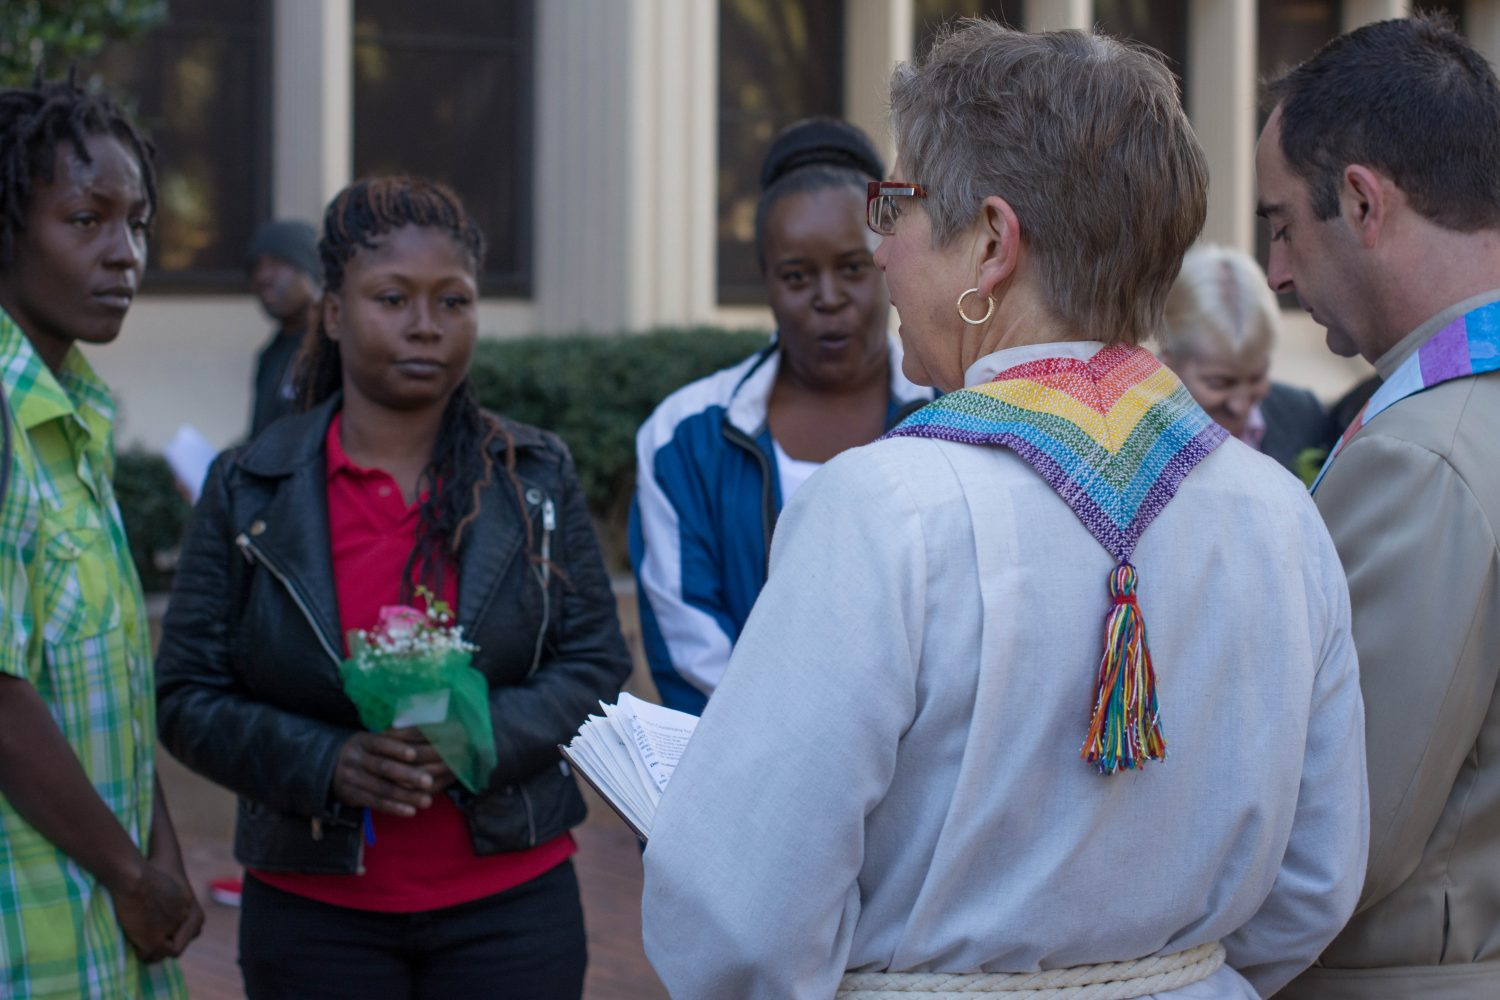 Senior Minister Shelly Wilson of the United Church of Gainesville facilities the wedding reception of Quintyra Ellis White (left) and LaKindra Ellis White (middle) with witness Stephanie Greer (right) outside the Alachua County Courthouse on Tuesday, Jan. 6.